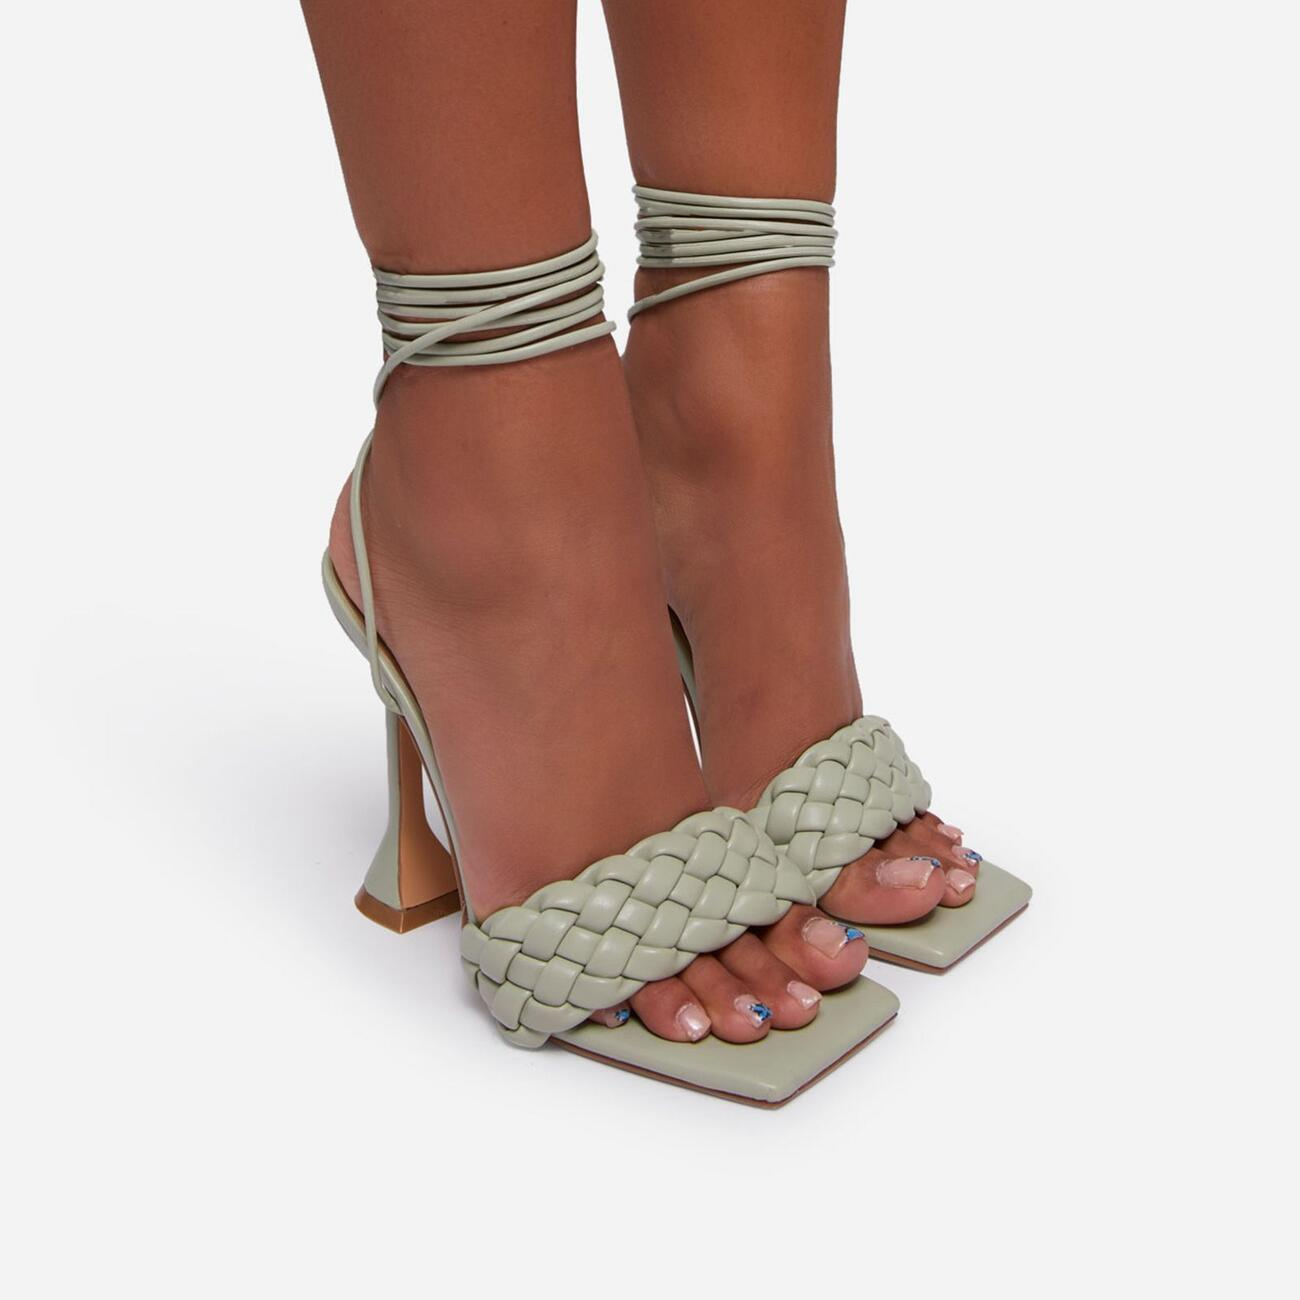 Master Lace Up Square Toe Woven Pyramid Heel In Sage Green Faux Leather Image 6